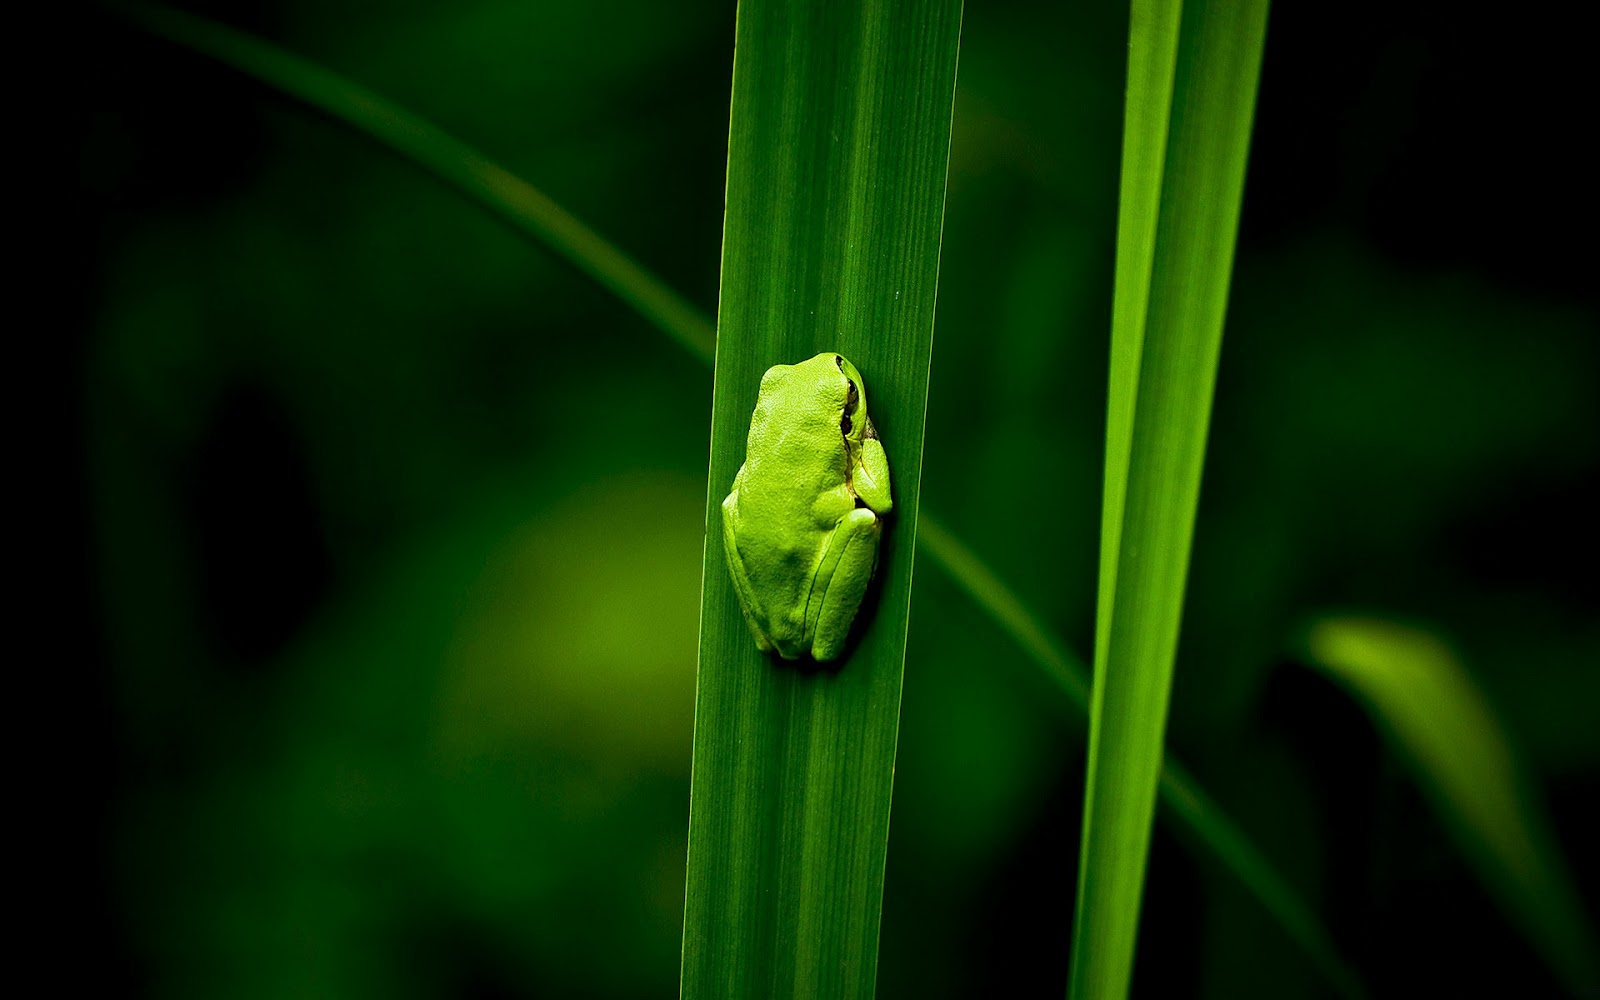 http://1.bp.blogspot.com/-1OLc5c1OvnU/UCQaUSsN_xI/AAAAAAAAAOc/xUknyGubWvw/s1600/hd-frog-wallpaper-with-a-green-frog-on-a-green-leaf-background-picture.jpg